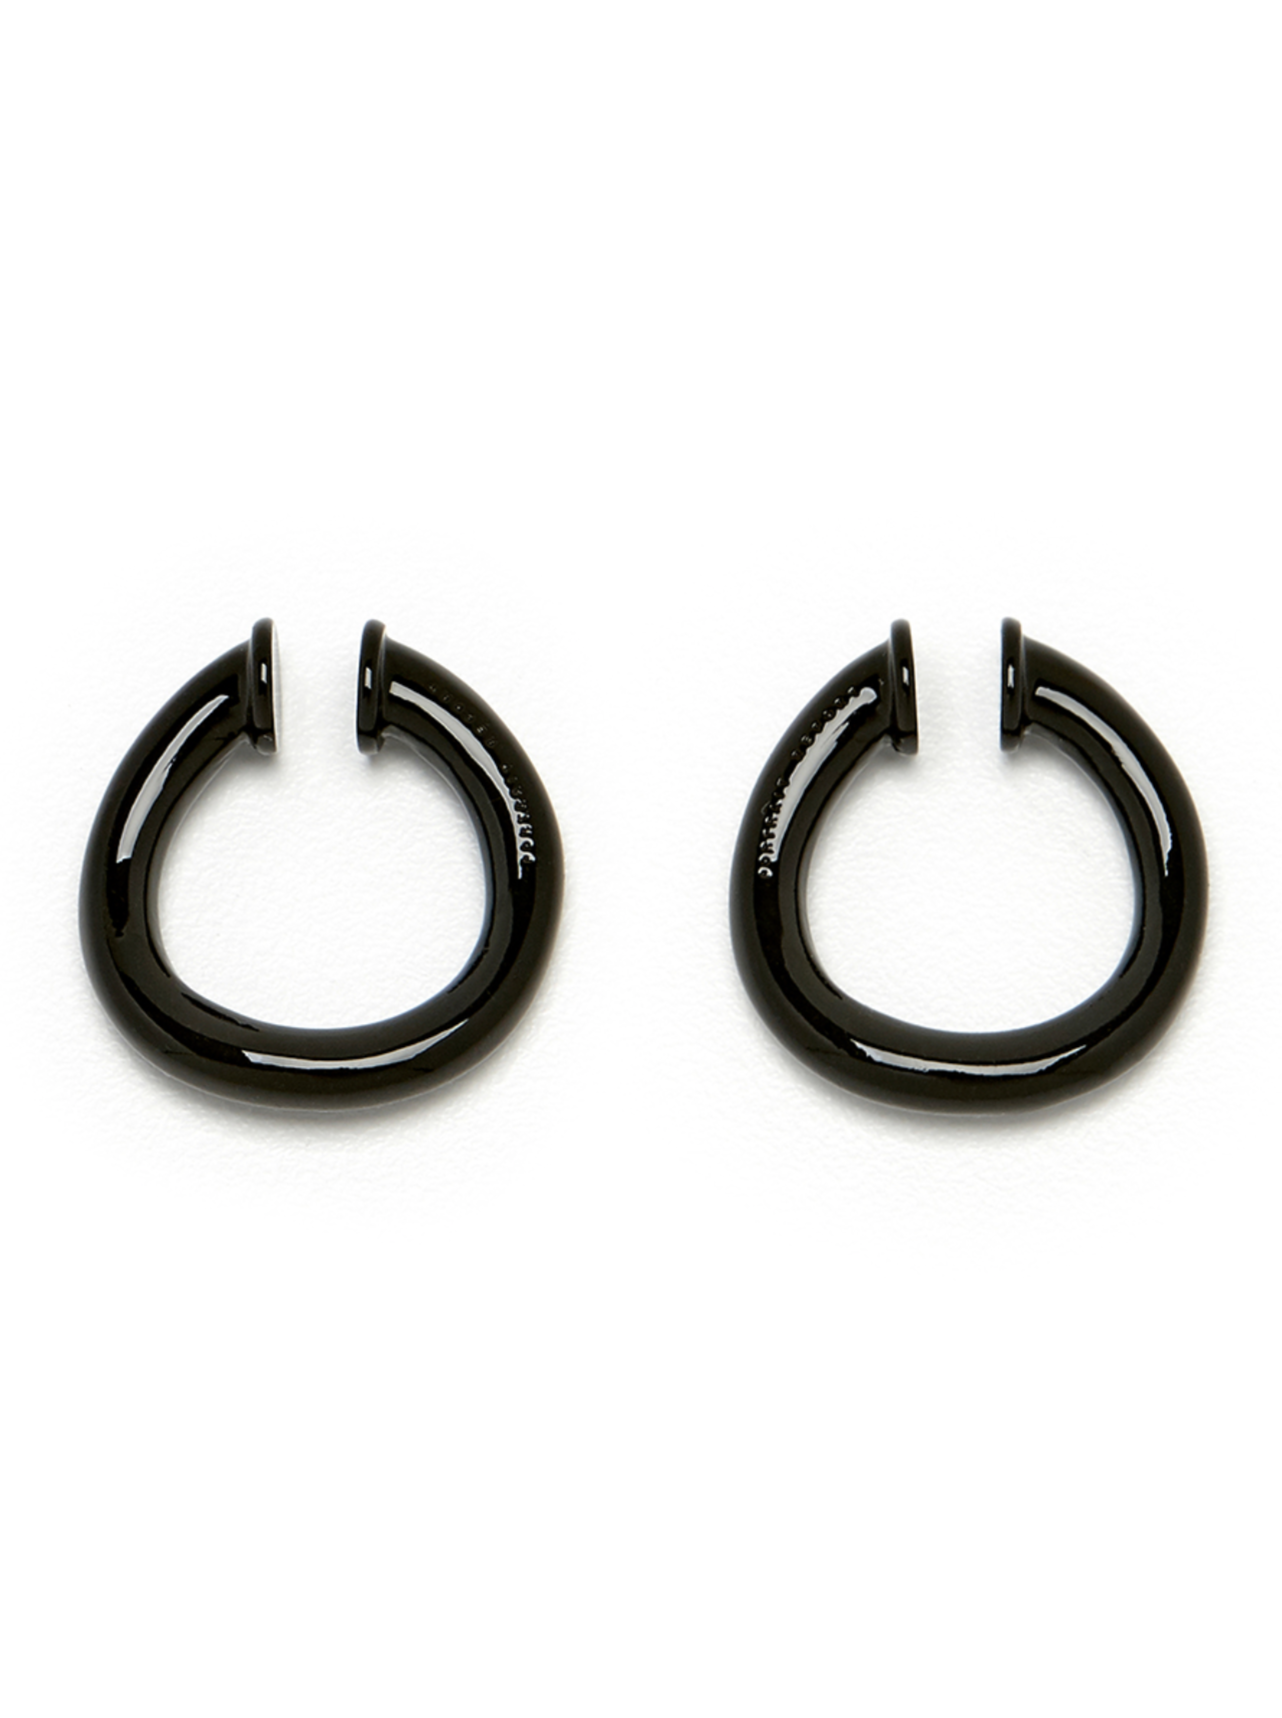 TWIST RING SMALL EAR CUFF